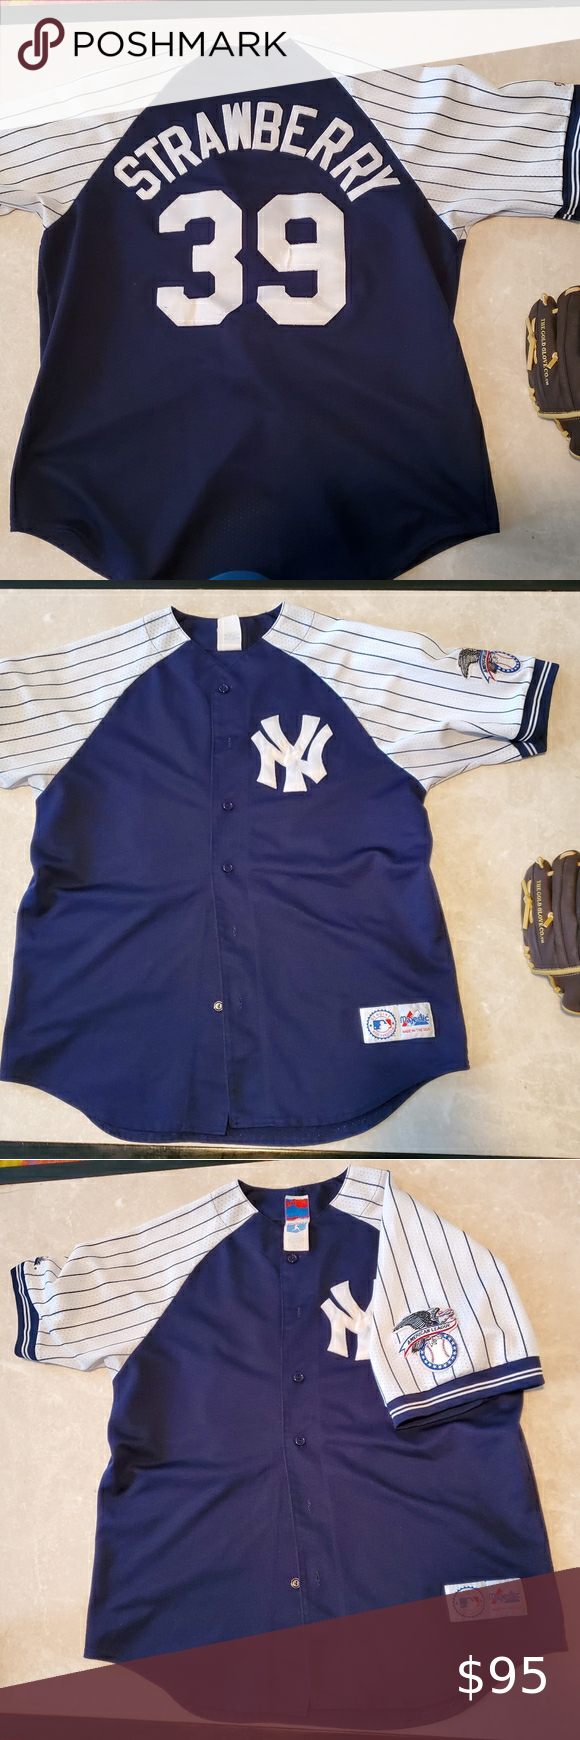 Vintage Majestic Yankees Darryl Strawberry Jersey In 2020 Majestic Shirts Fashion Clothes Design